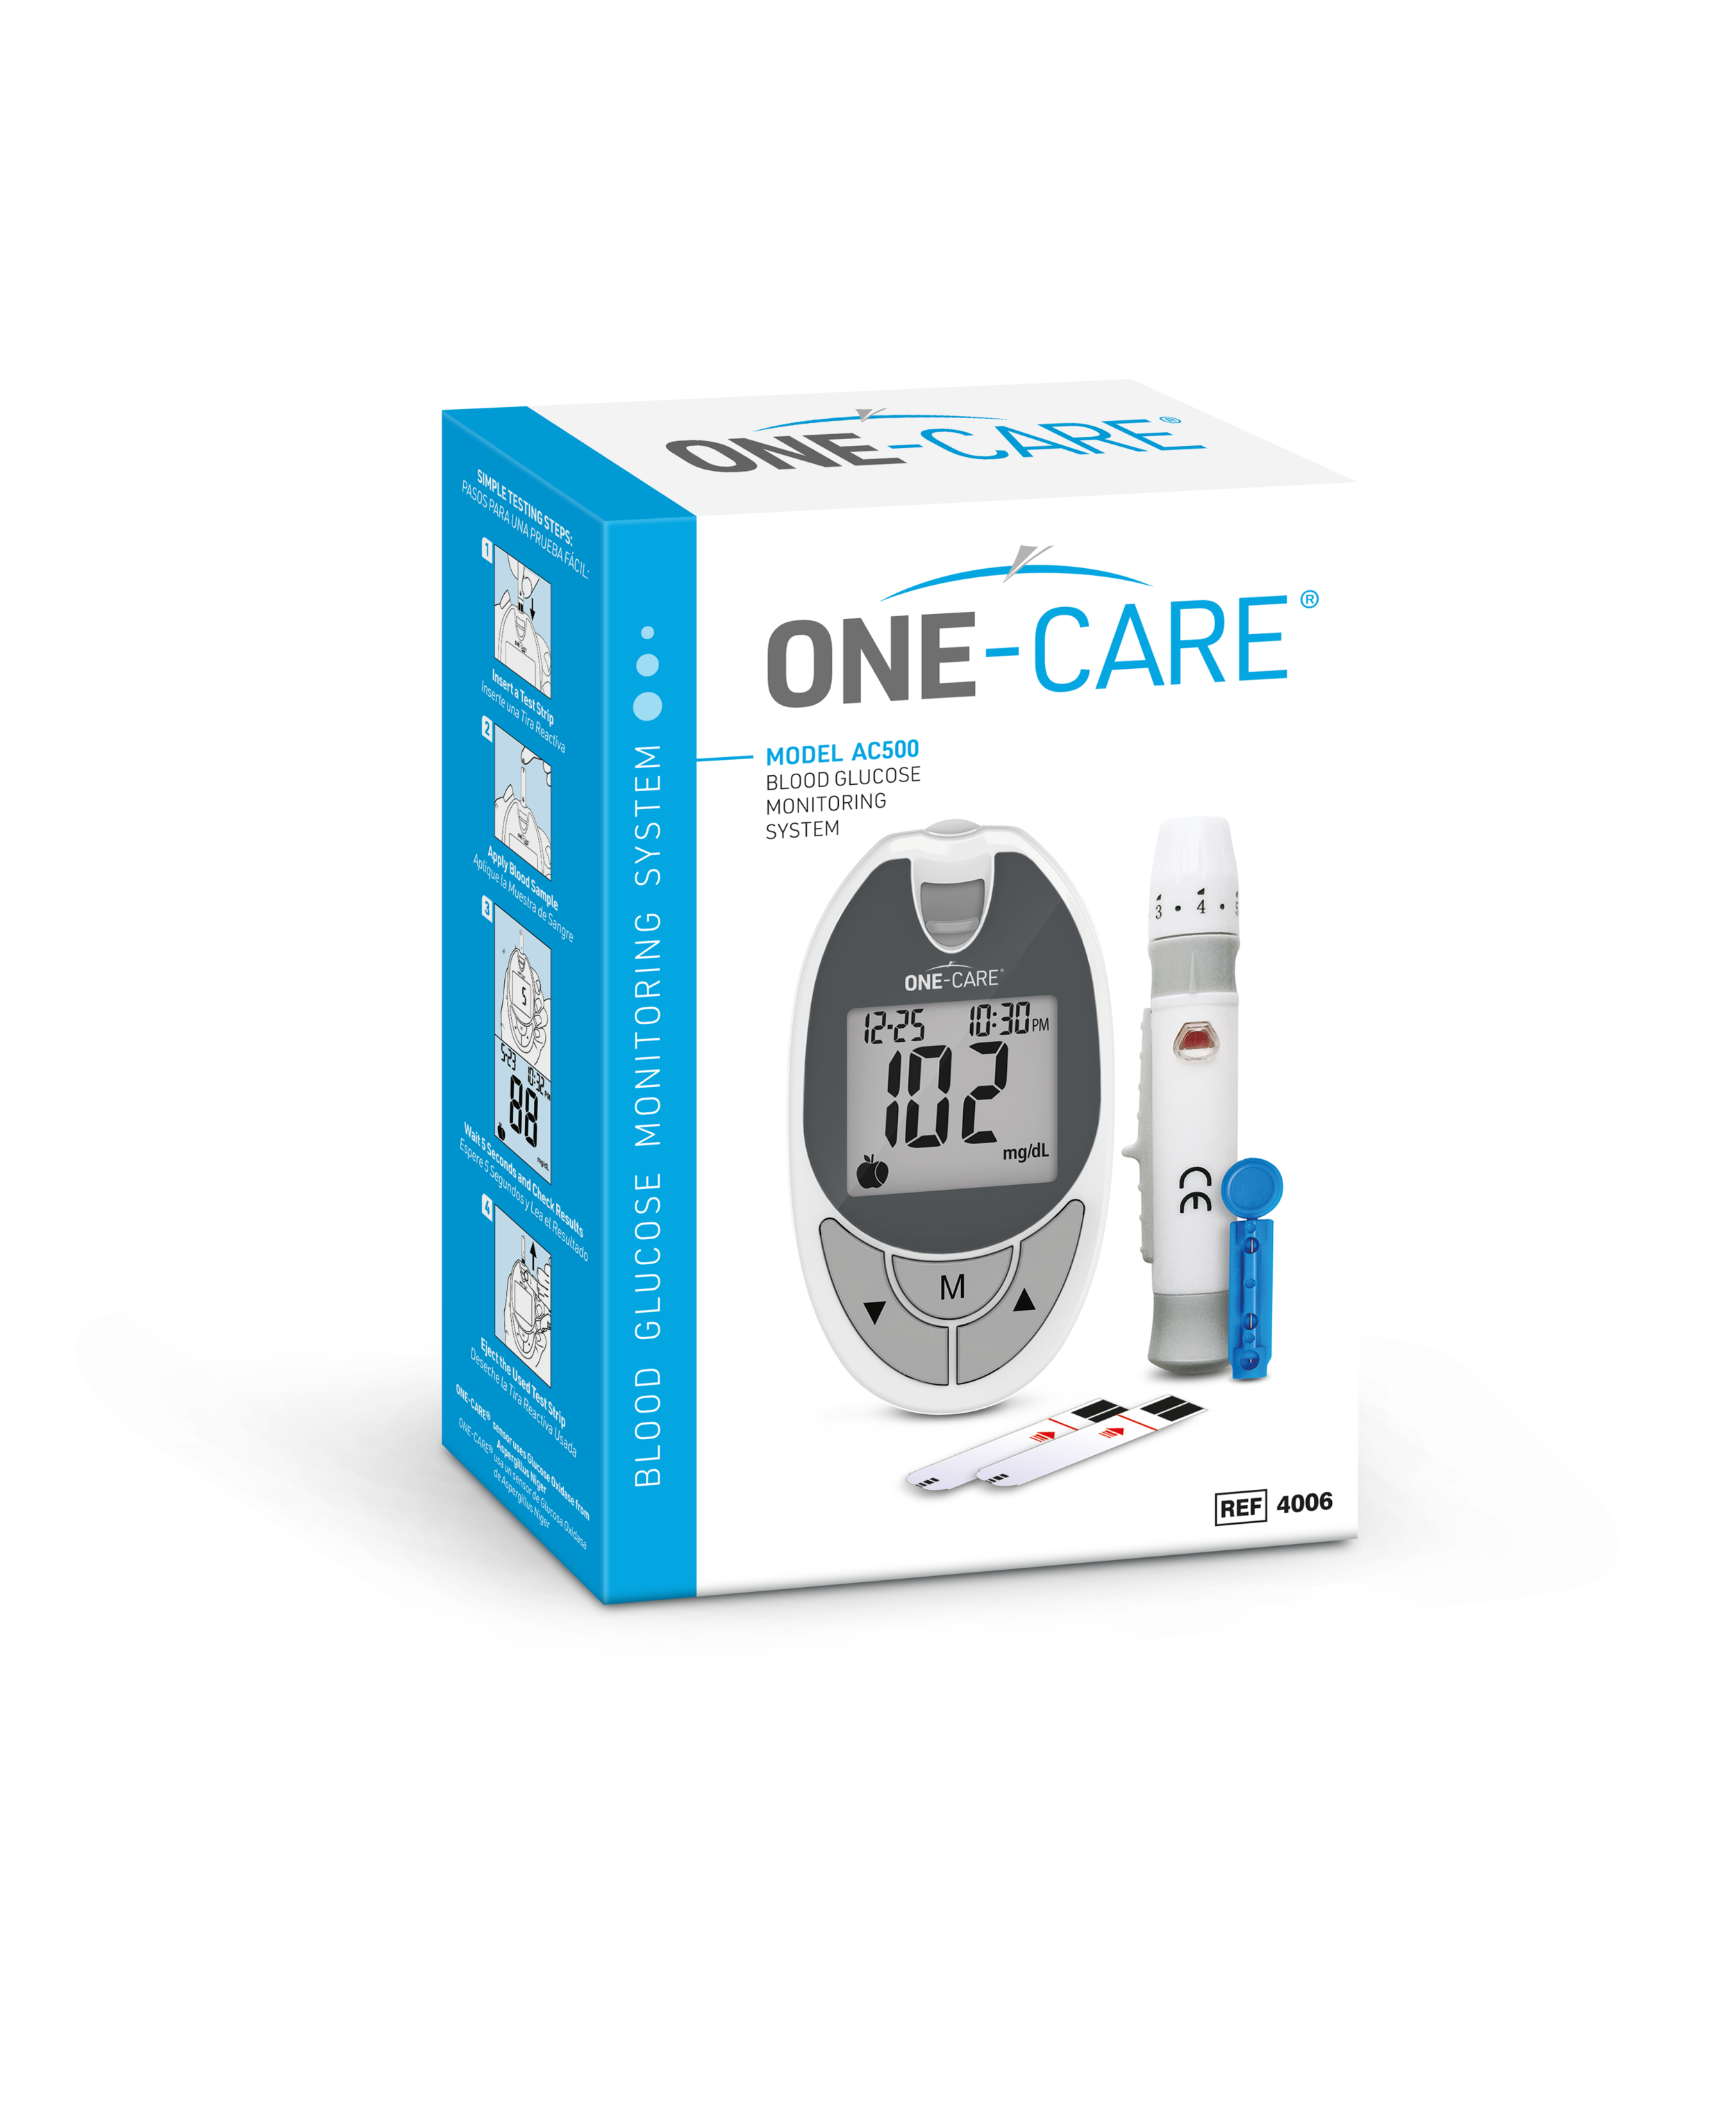 One Care PRO+ kit_v18_4006_render_v2.png